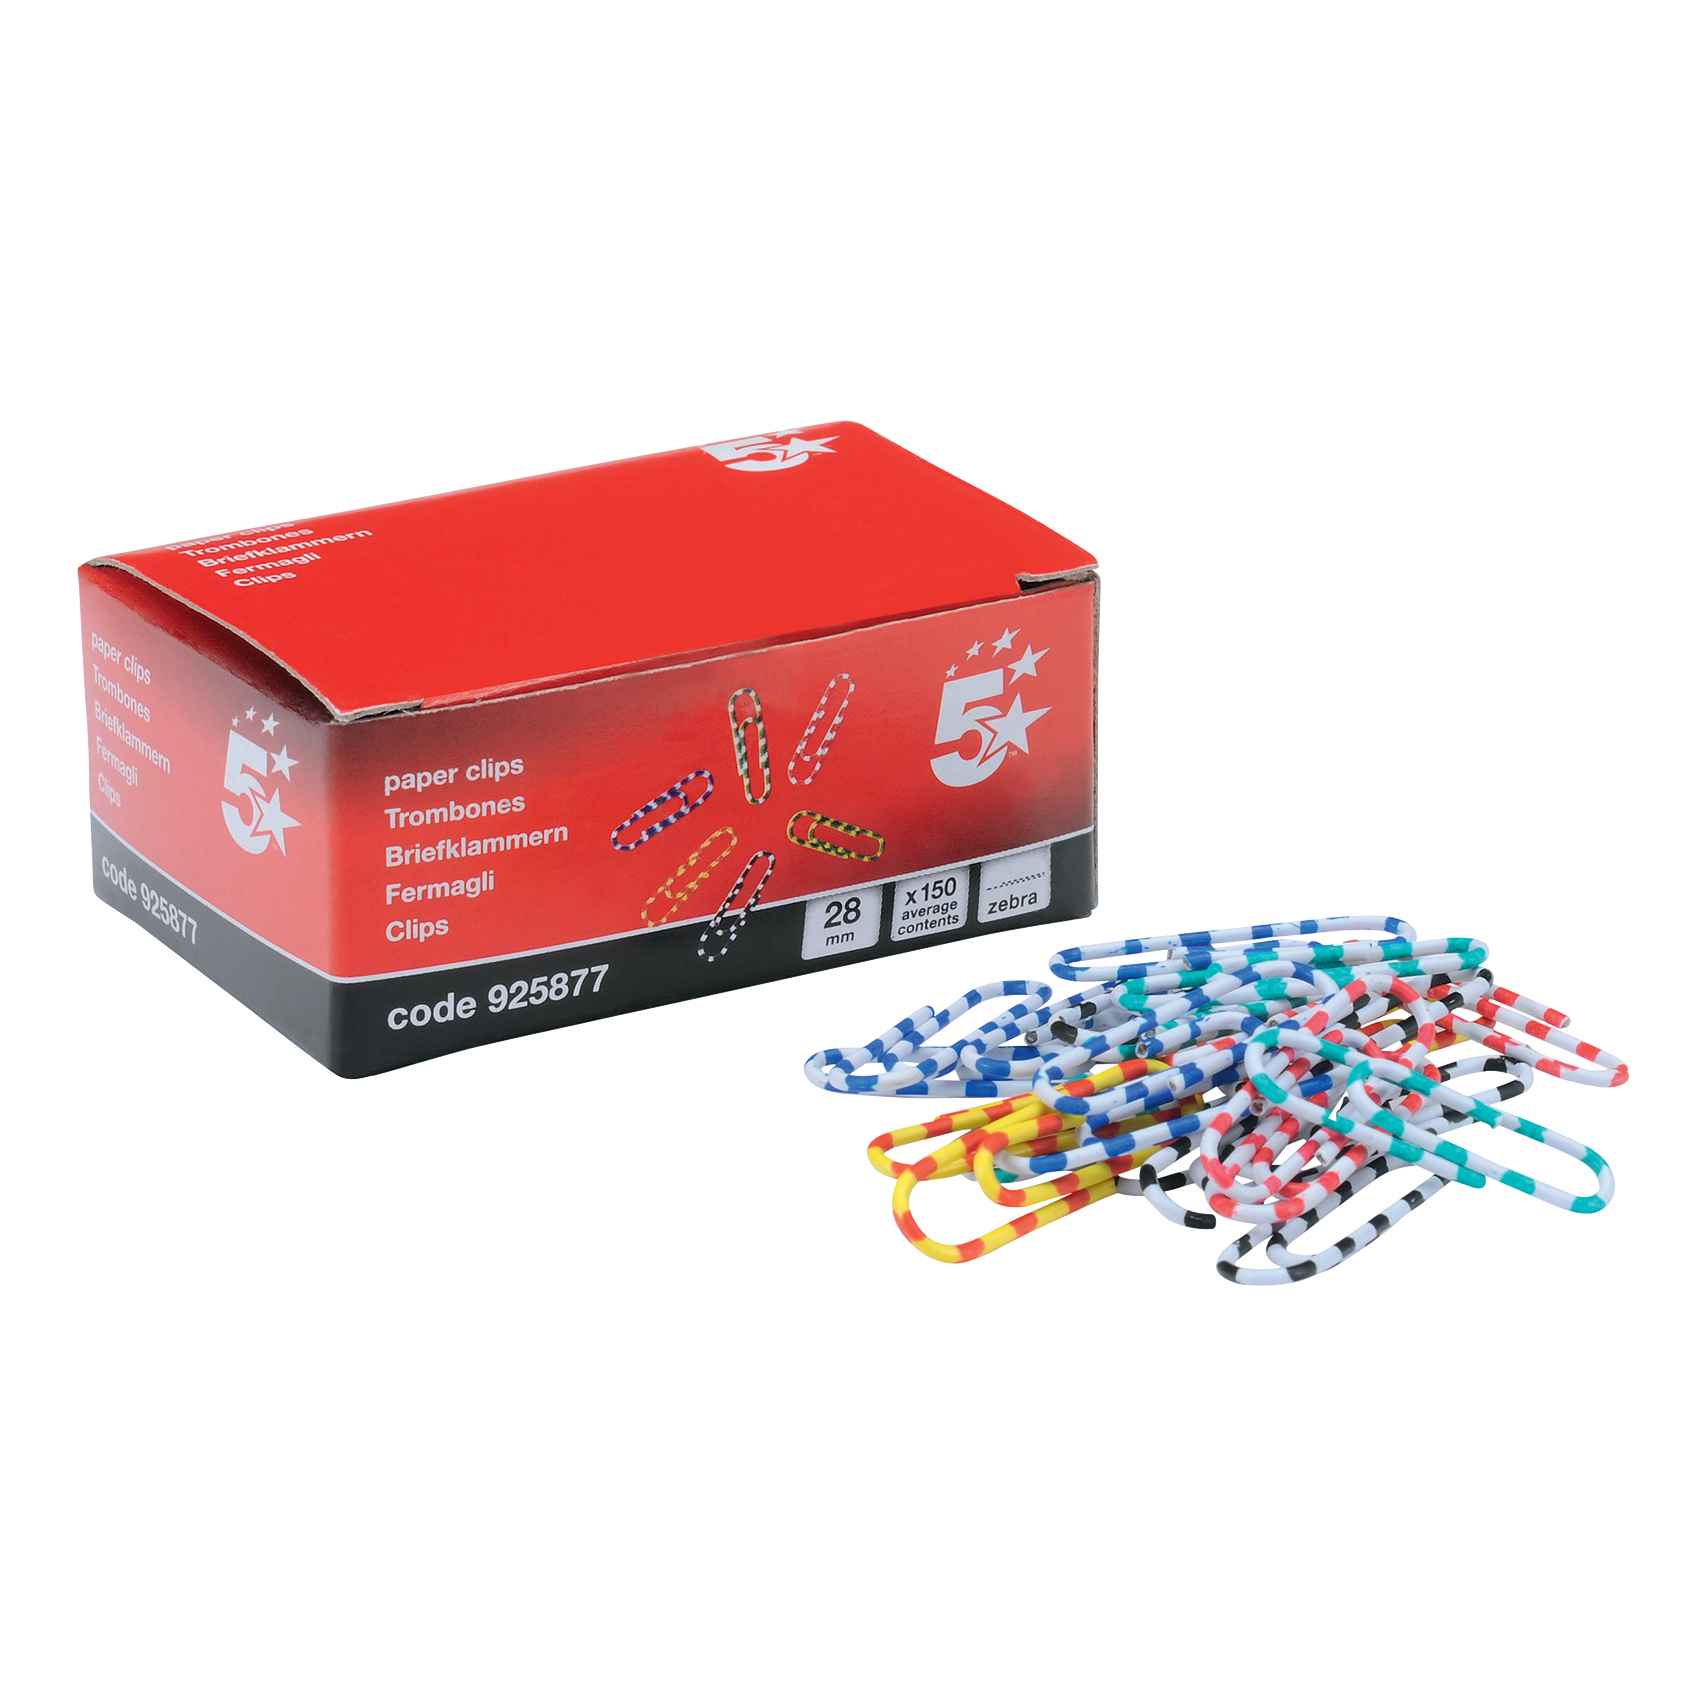 5 Star Zebra Paperclips Length 28mm Assorted Pack 150